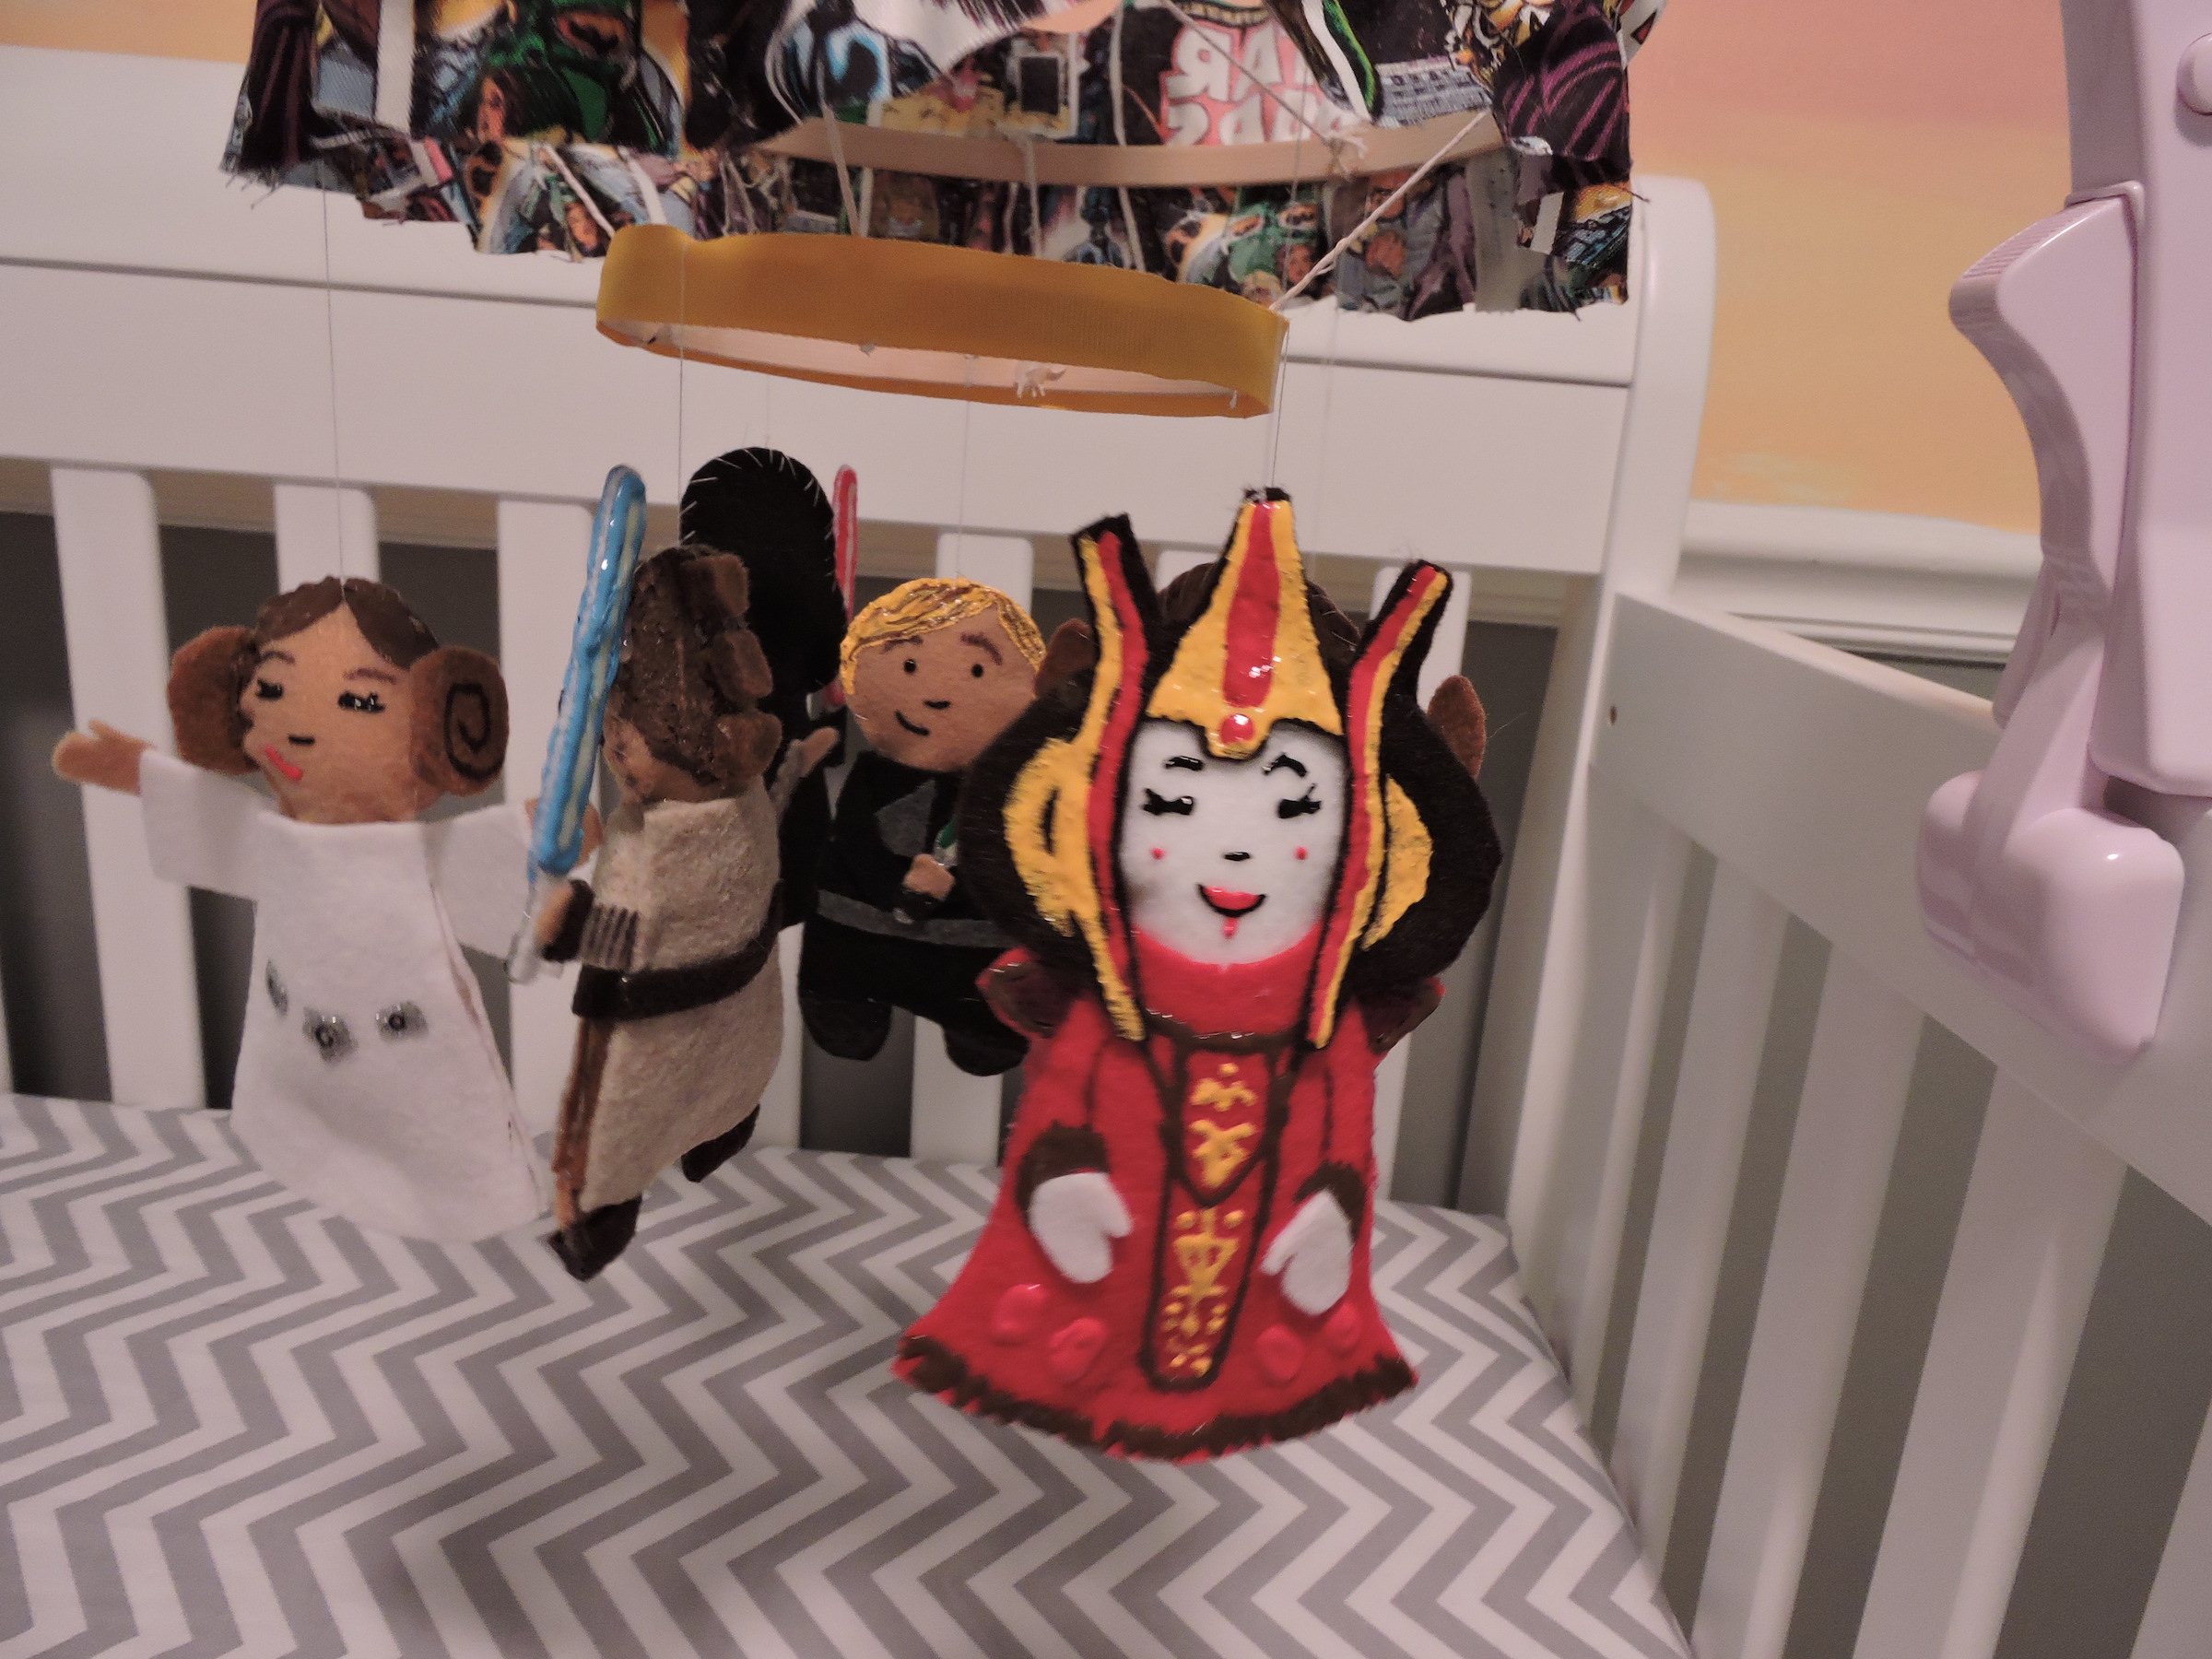 Crib mobile with toys depicting various Star Wars characters